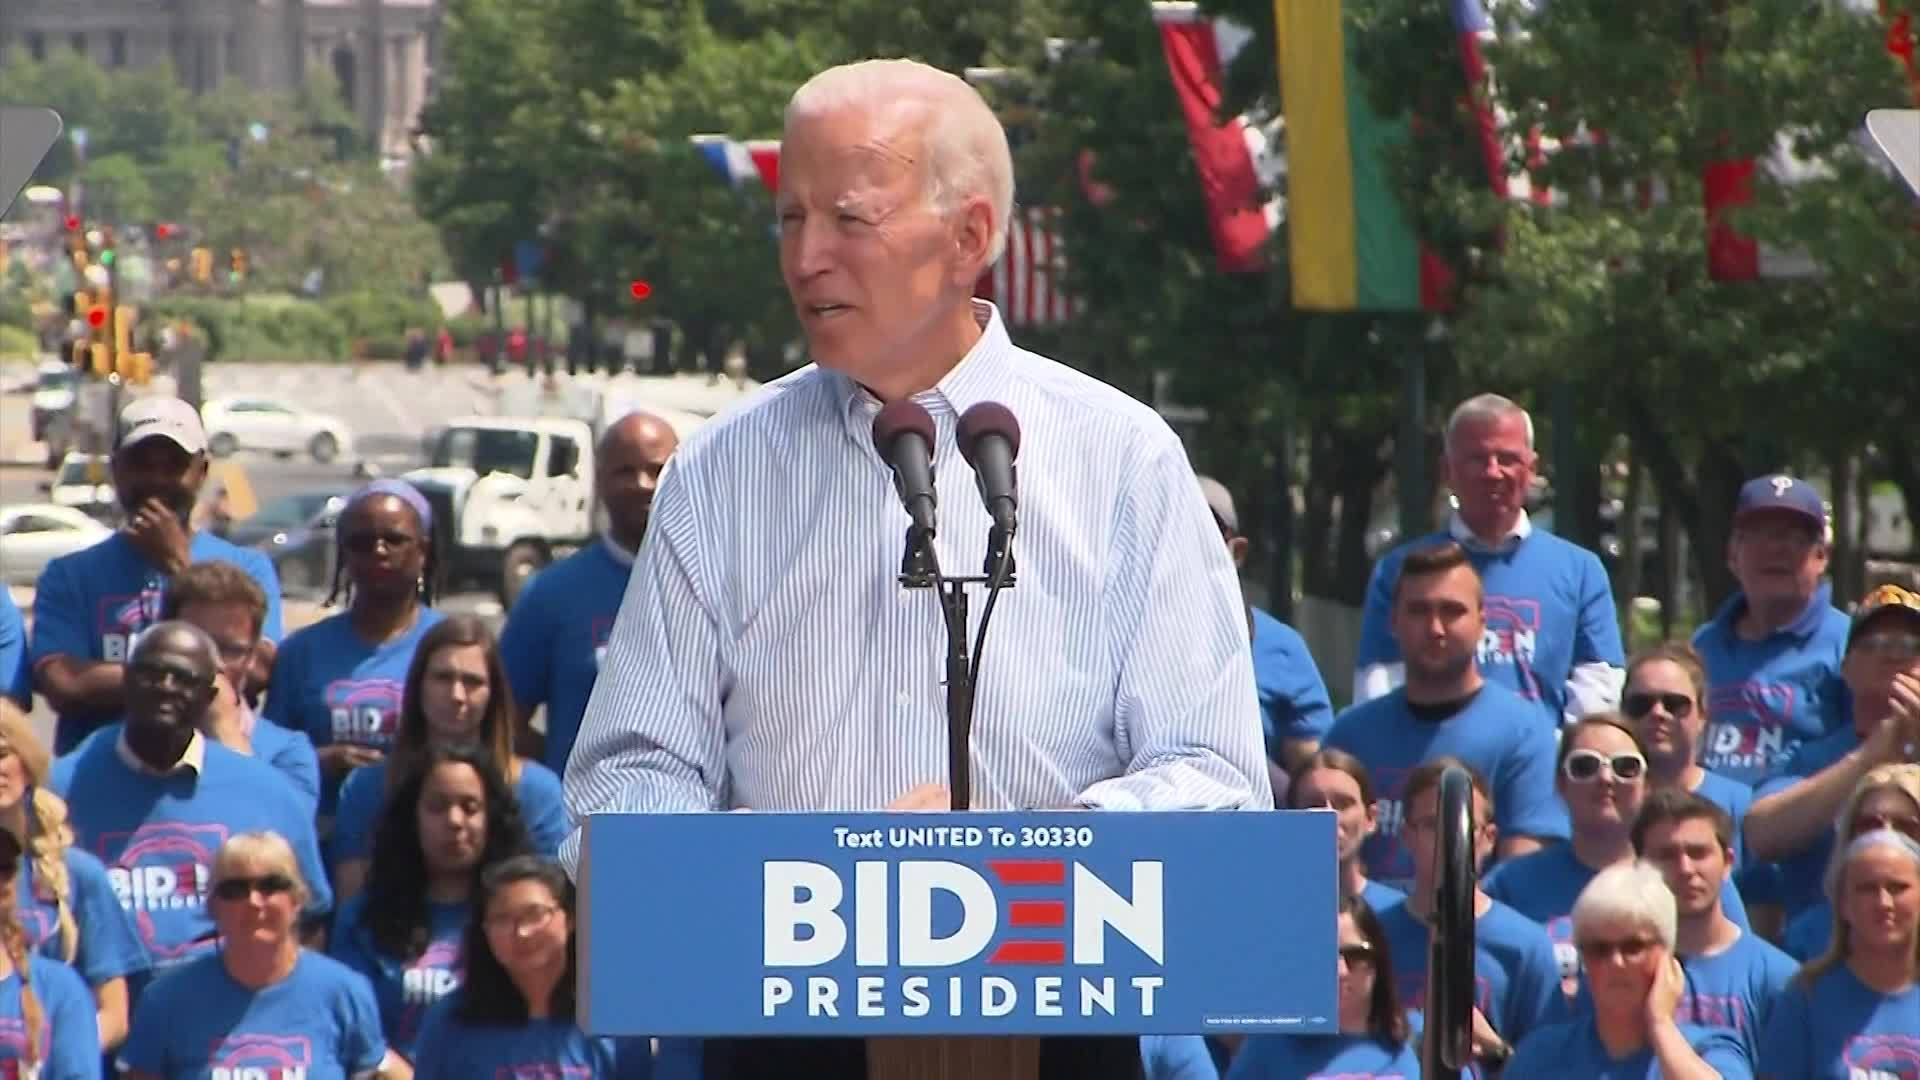 Biden_rejects_Democrats__anger_in_call_f_4_20190519092253